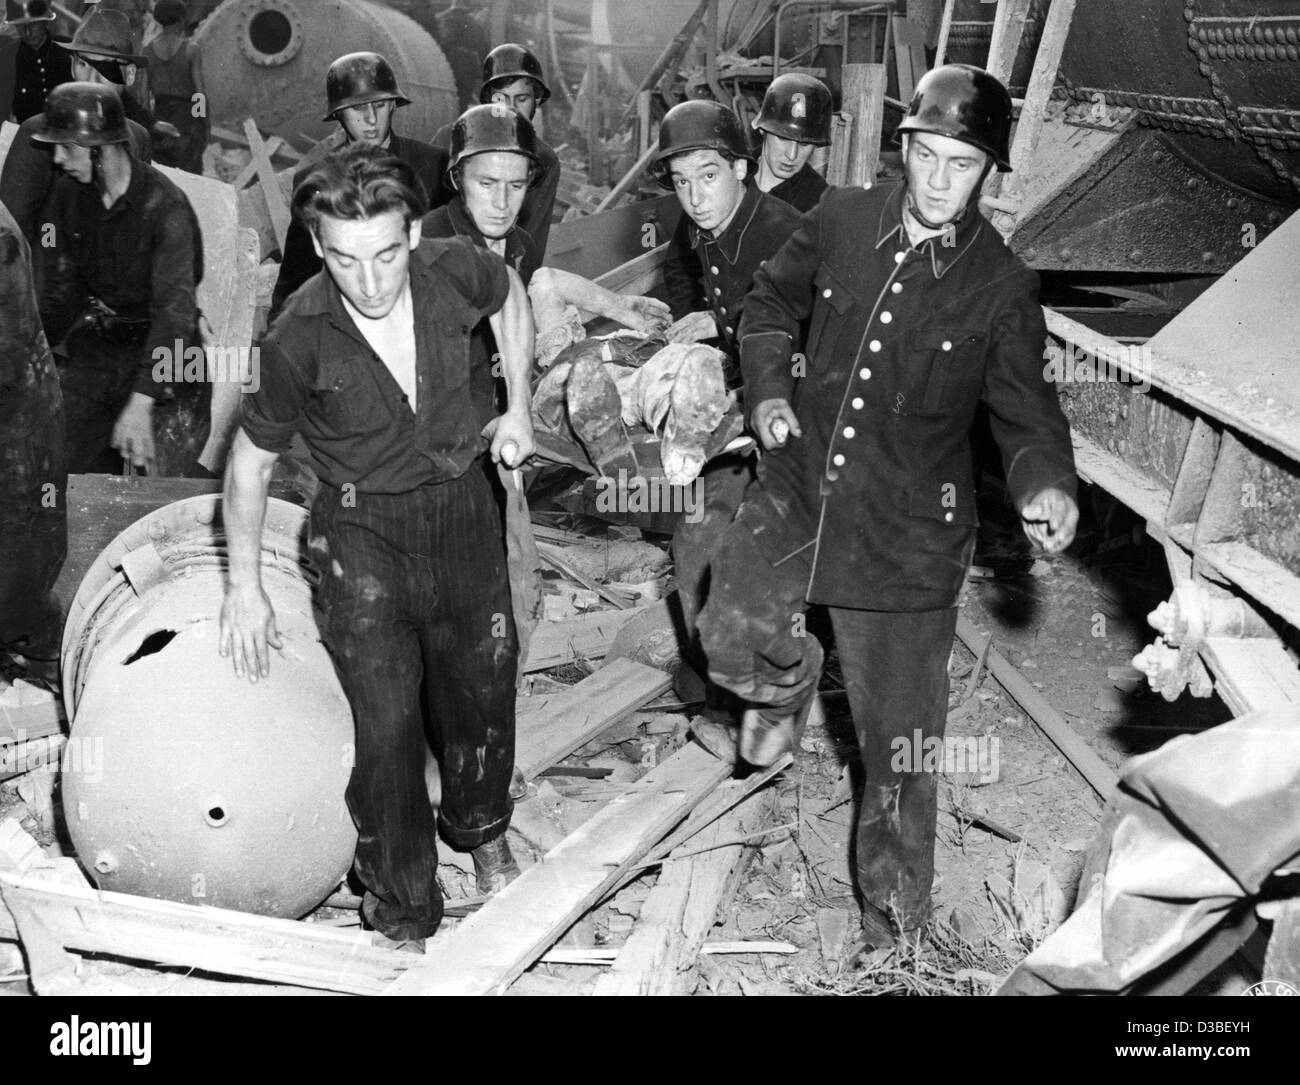 (dpa files) - Rescue workers bring away one of the victims of the chemical blast at the BASF chemical plant in Ludwigshafen, - Stock Image